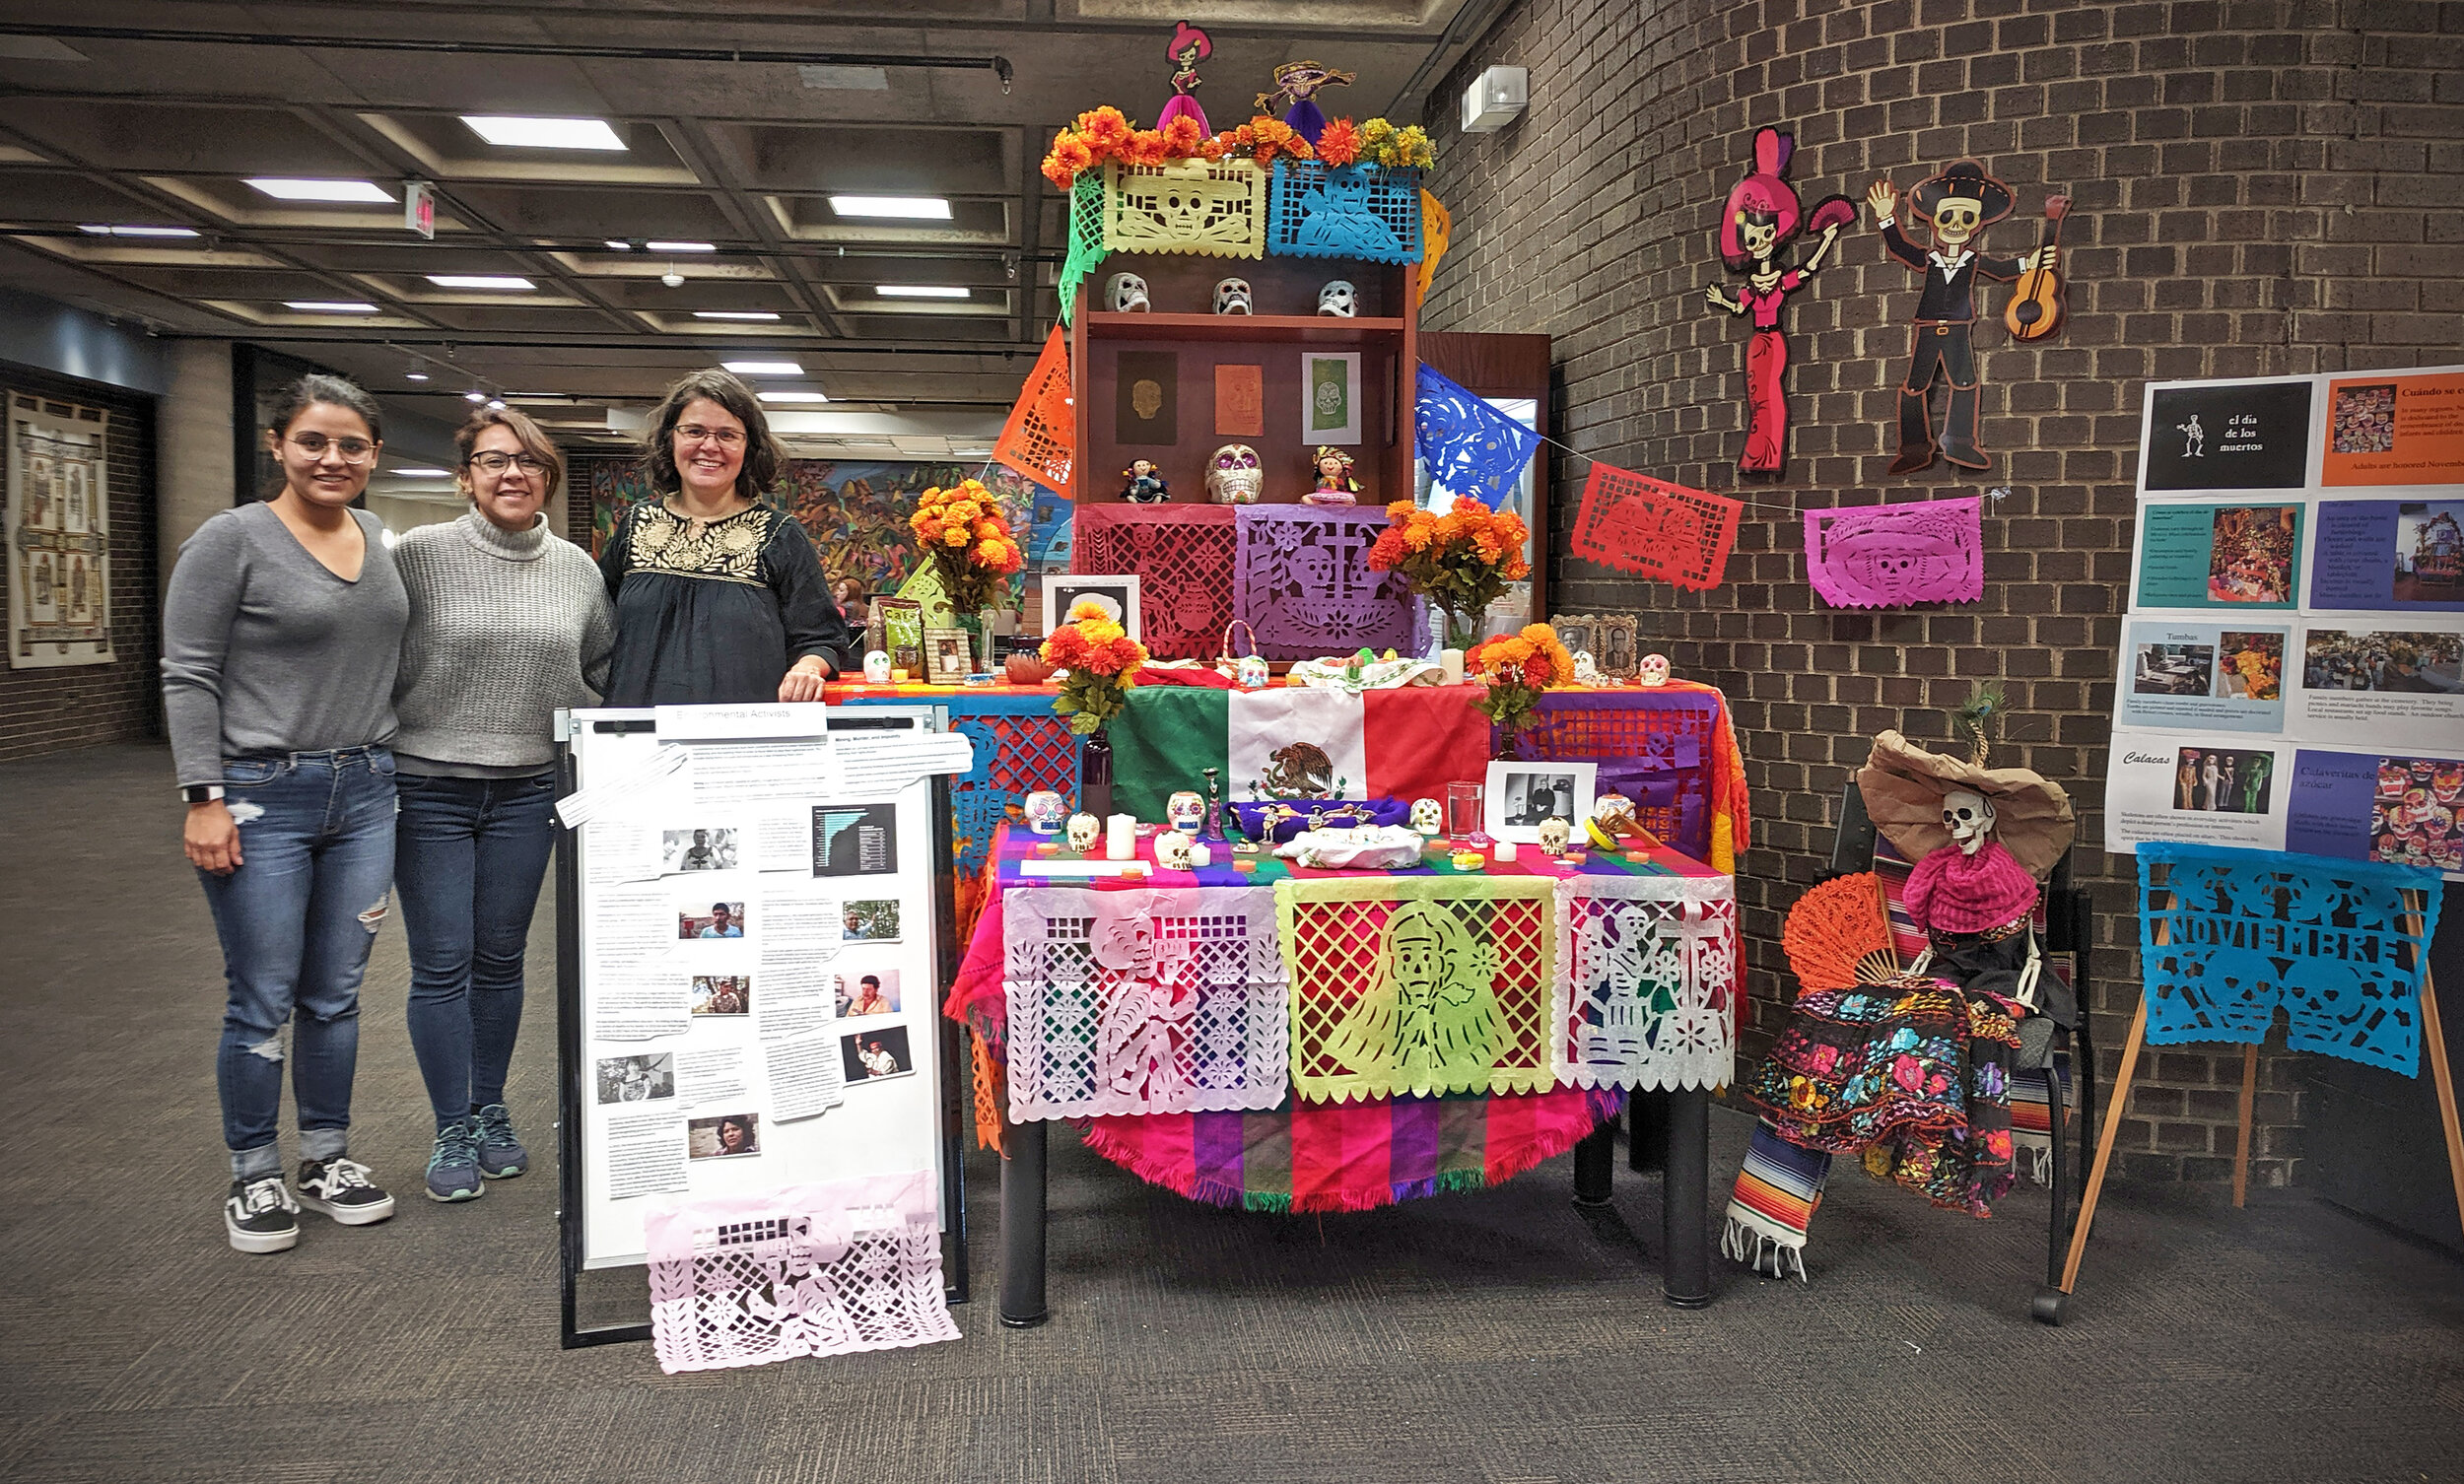 One of many International Education Week activities included The Day of the Dead community altar at the Patrick Power Library (Oct 29 - Nov 4), which celebrates the memory of departed loved ones and the continuity of life.